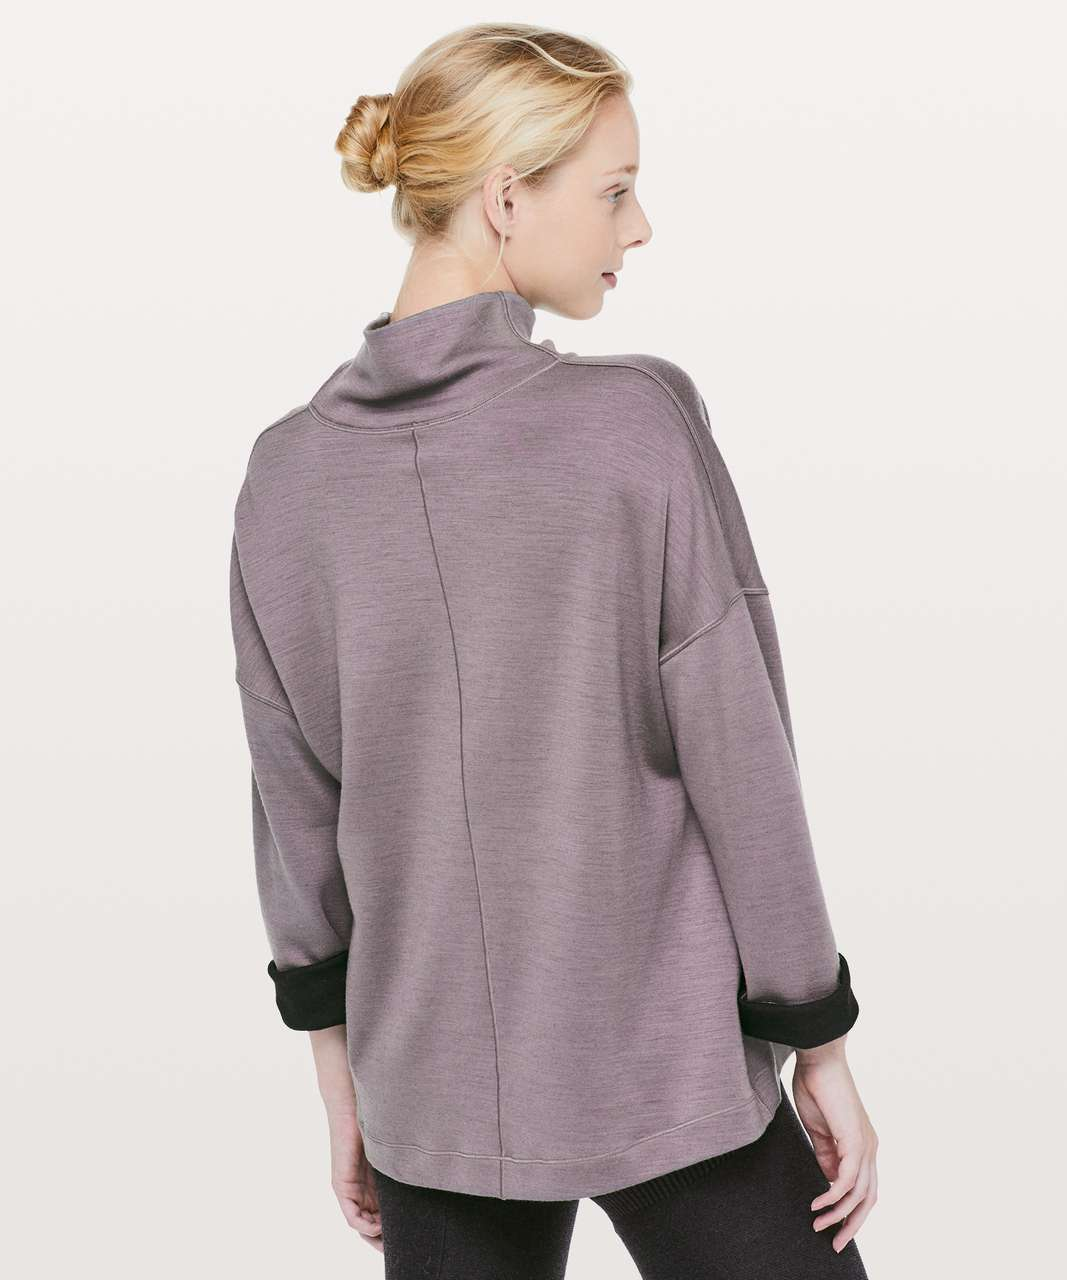 Lululemon Principal Dancer Funnel Neck Sweater - Lunar Rock